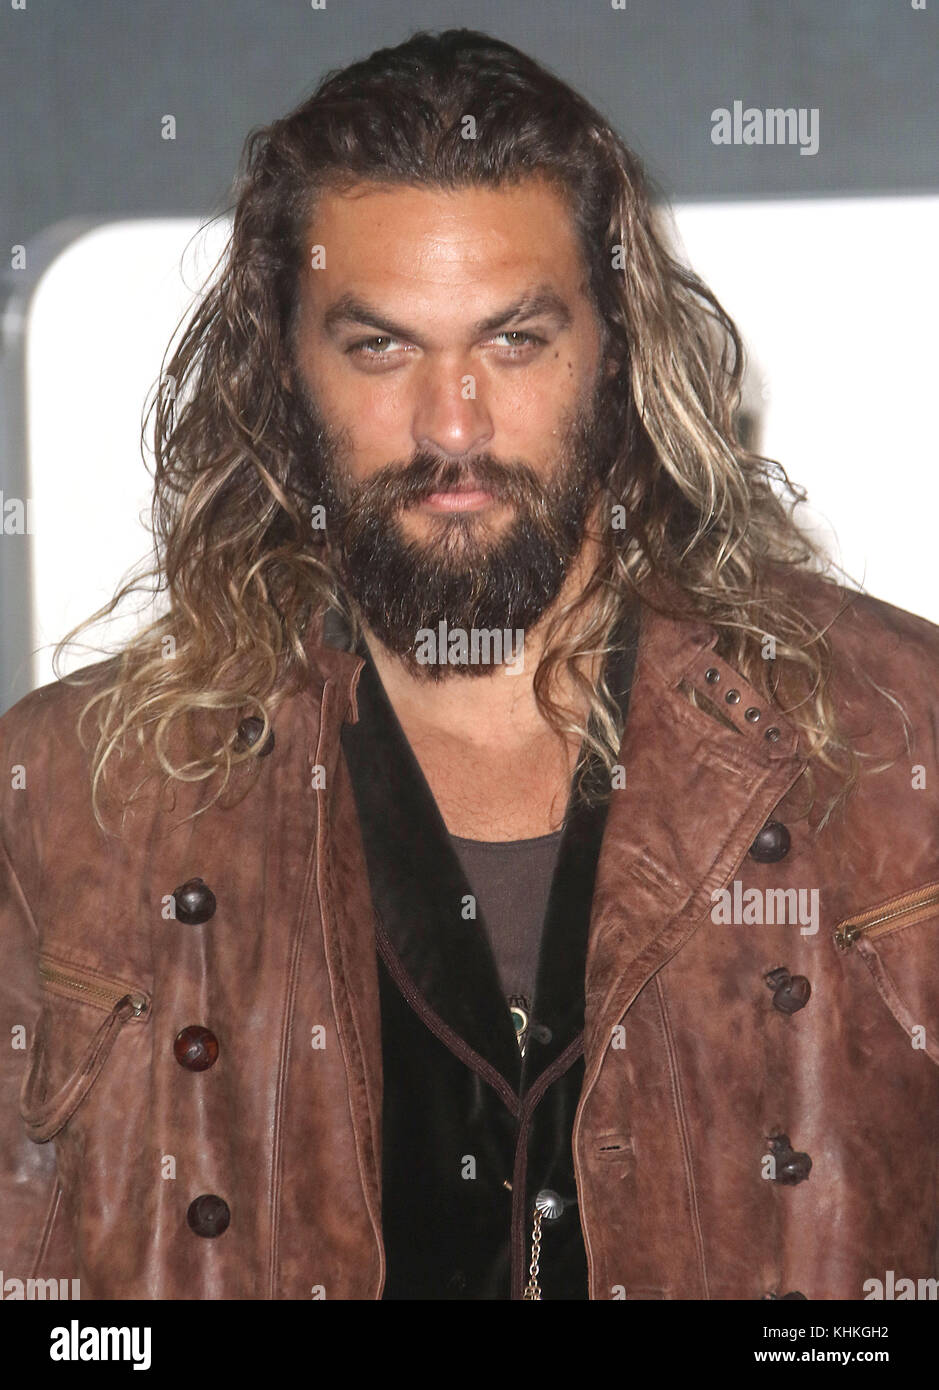 Nov 04, 2017 - Jason Momoa attending 'Justice League' Photocall, The College, Southampton Row in London, - Stock Image